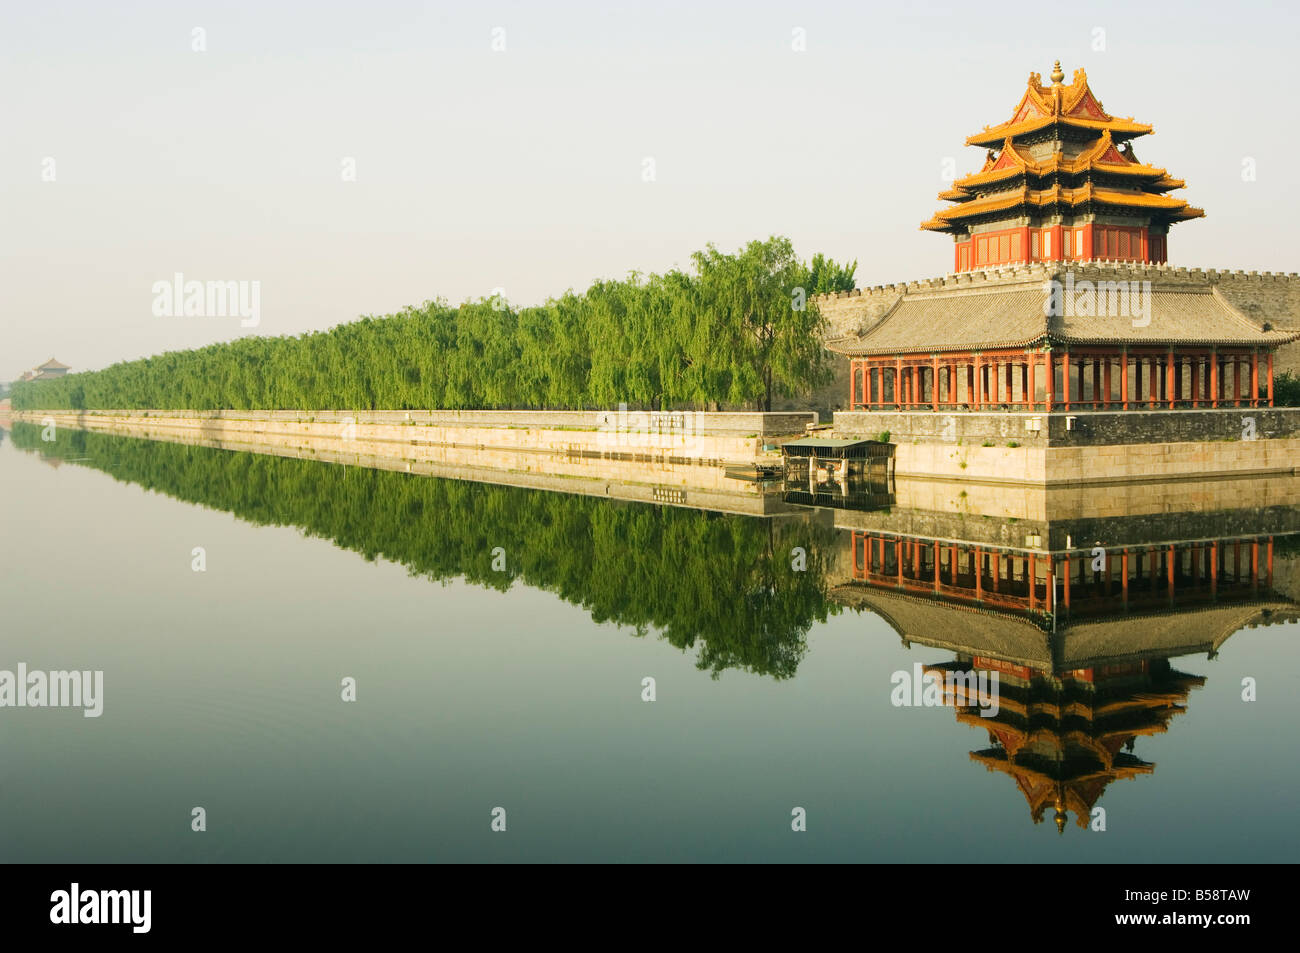 A reflection of the Palace Wall Tower in the moat of The Forbidden City Palace Museum, Beijing, China - Stock Image